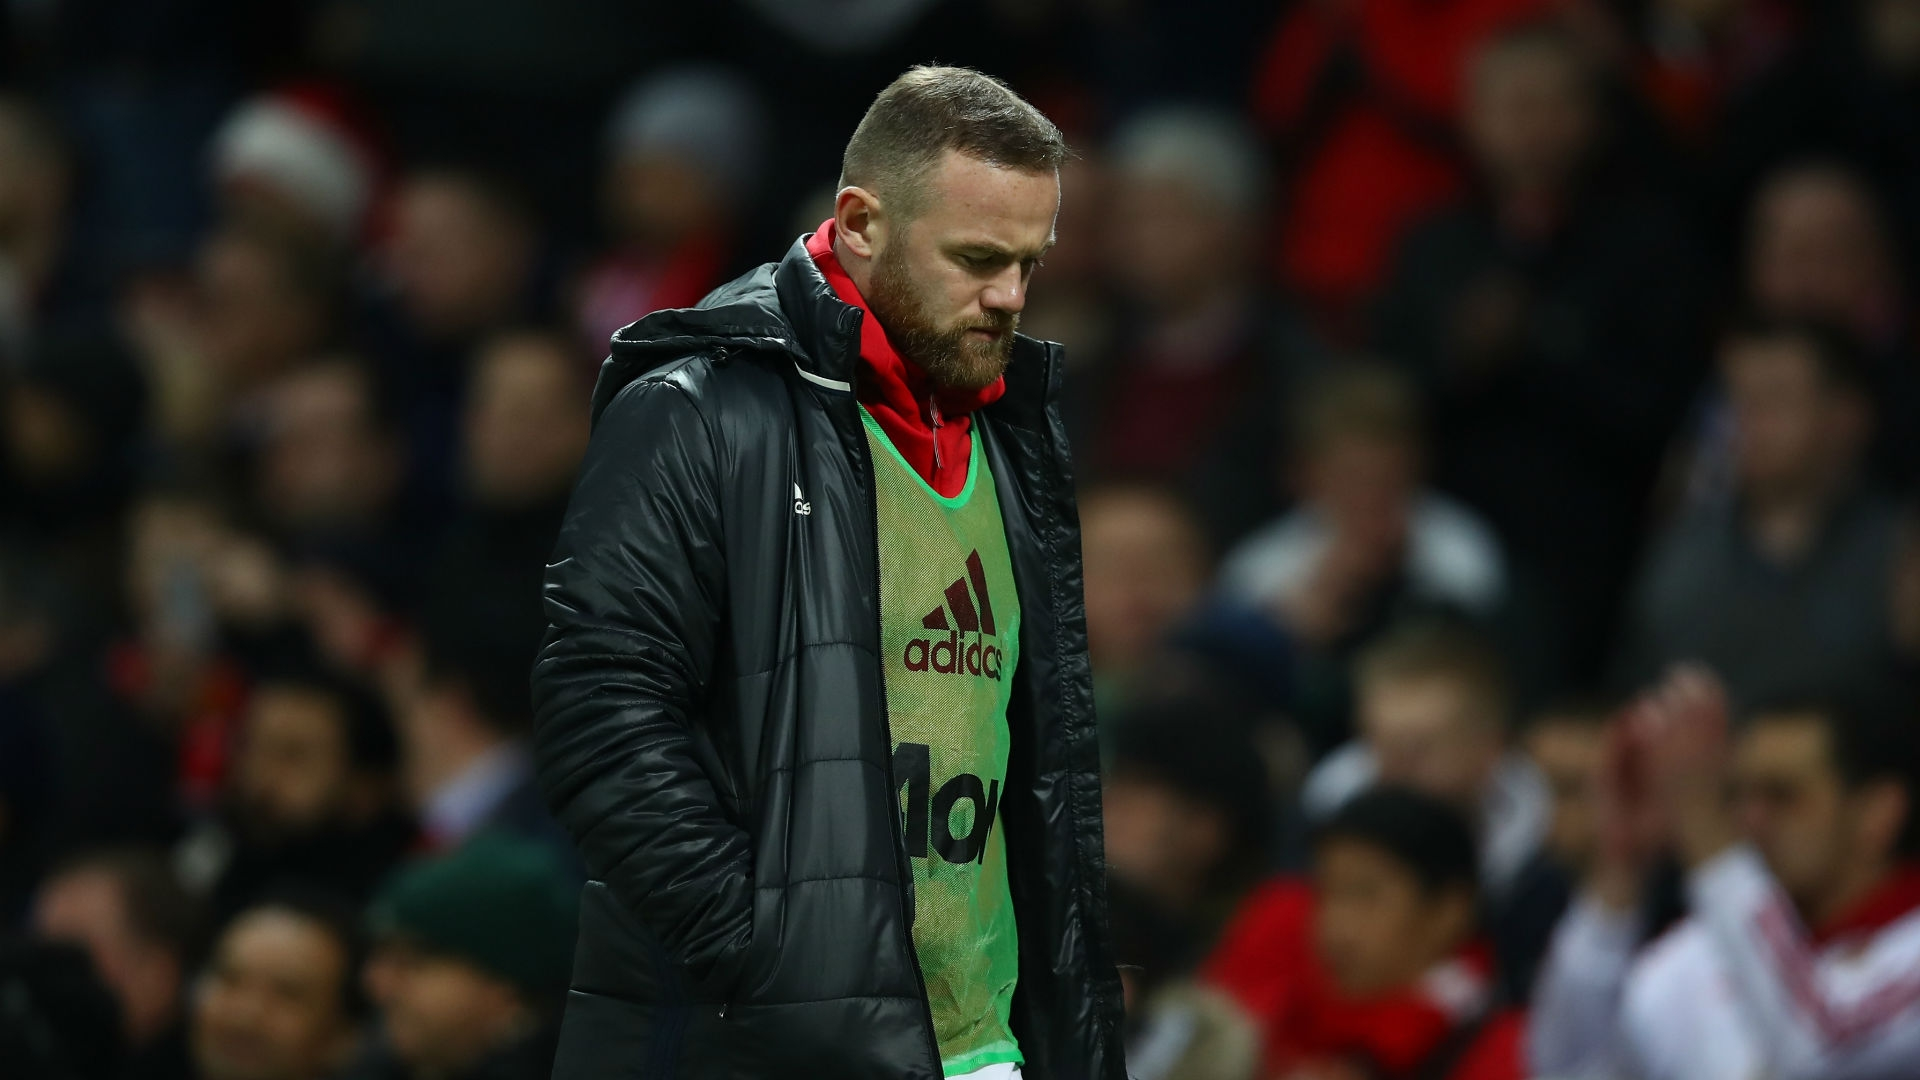 Wayne Rooney, recently transferred to Everton, talked about his final period at Manchester United and admits he felt frustrated with the lack of playing time.